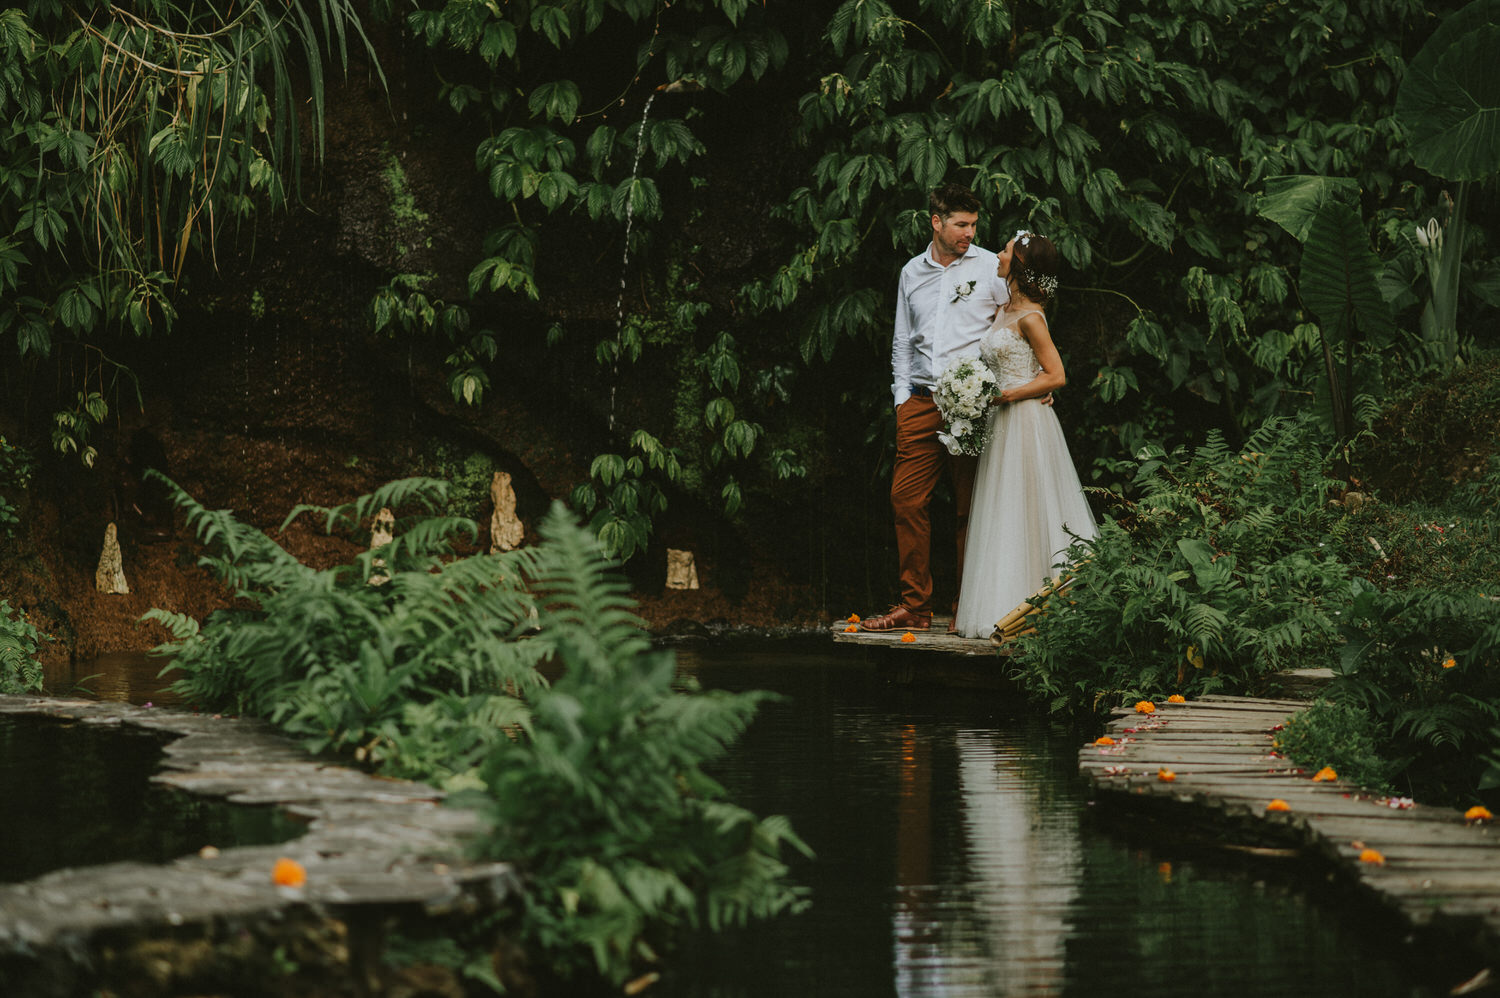 bali-wedding-ubud-wedding-wedding-destination-diktatphotography-kadek-artayasa-elaine-and-glenn-101